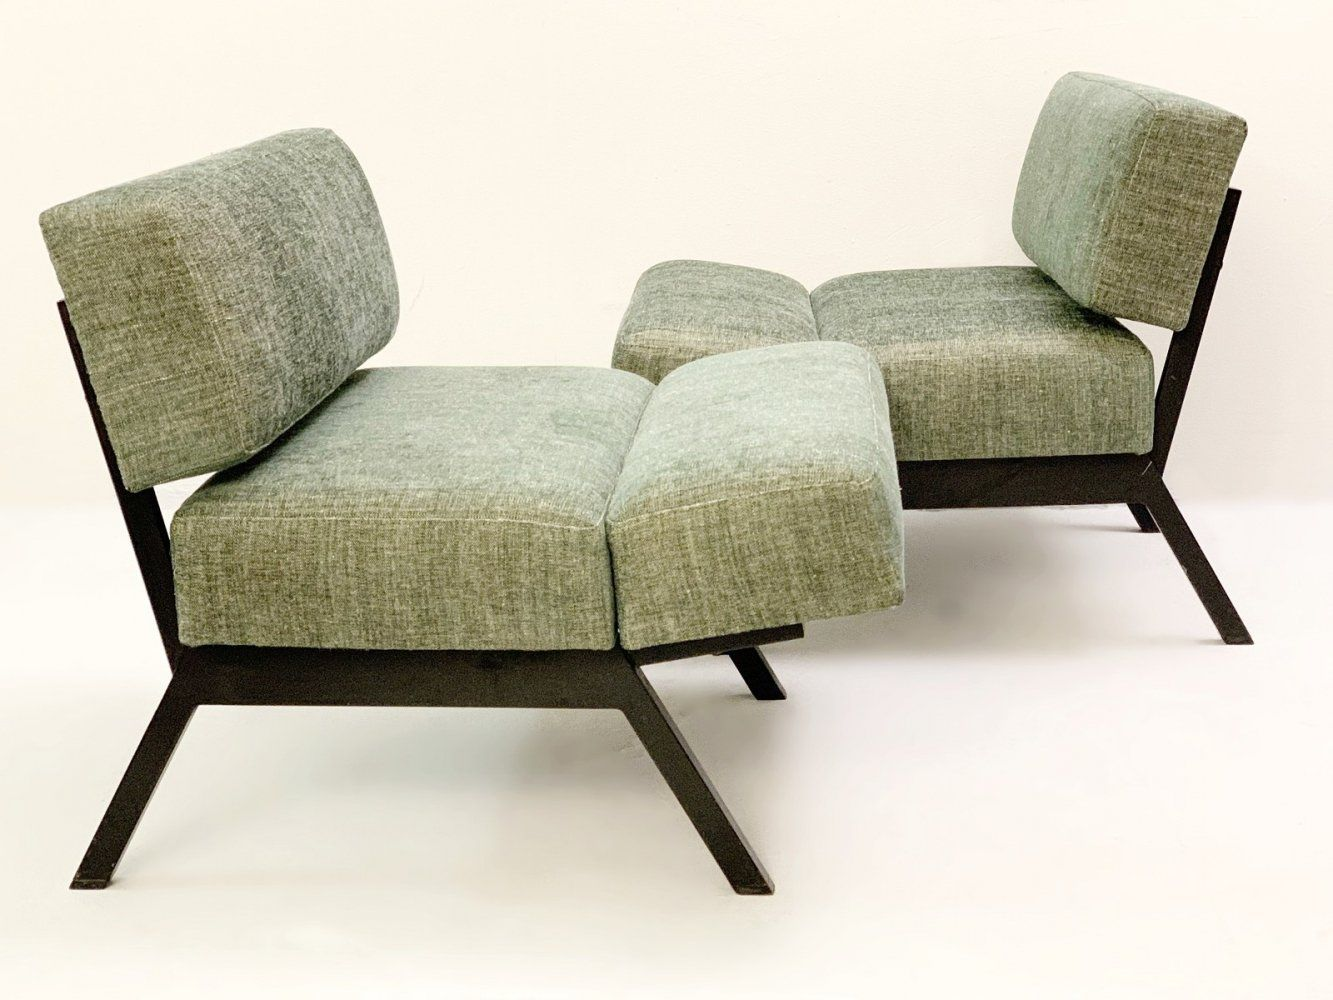 For Sale Pair Of Italian Panchetto Reclining Chairs By Rito Valla For Ipe 1960s